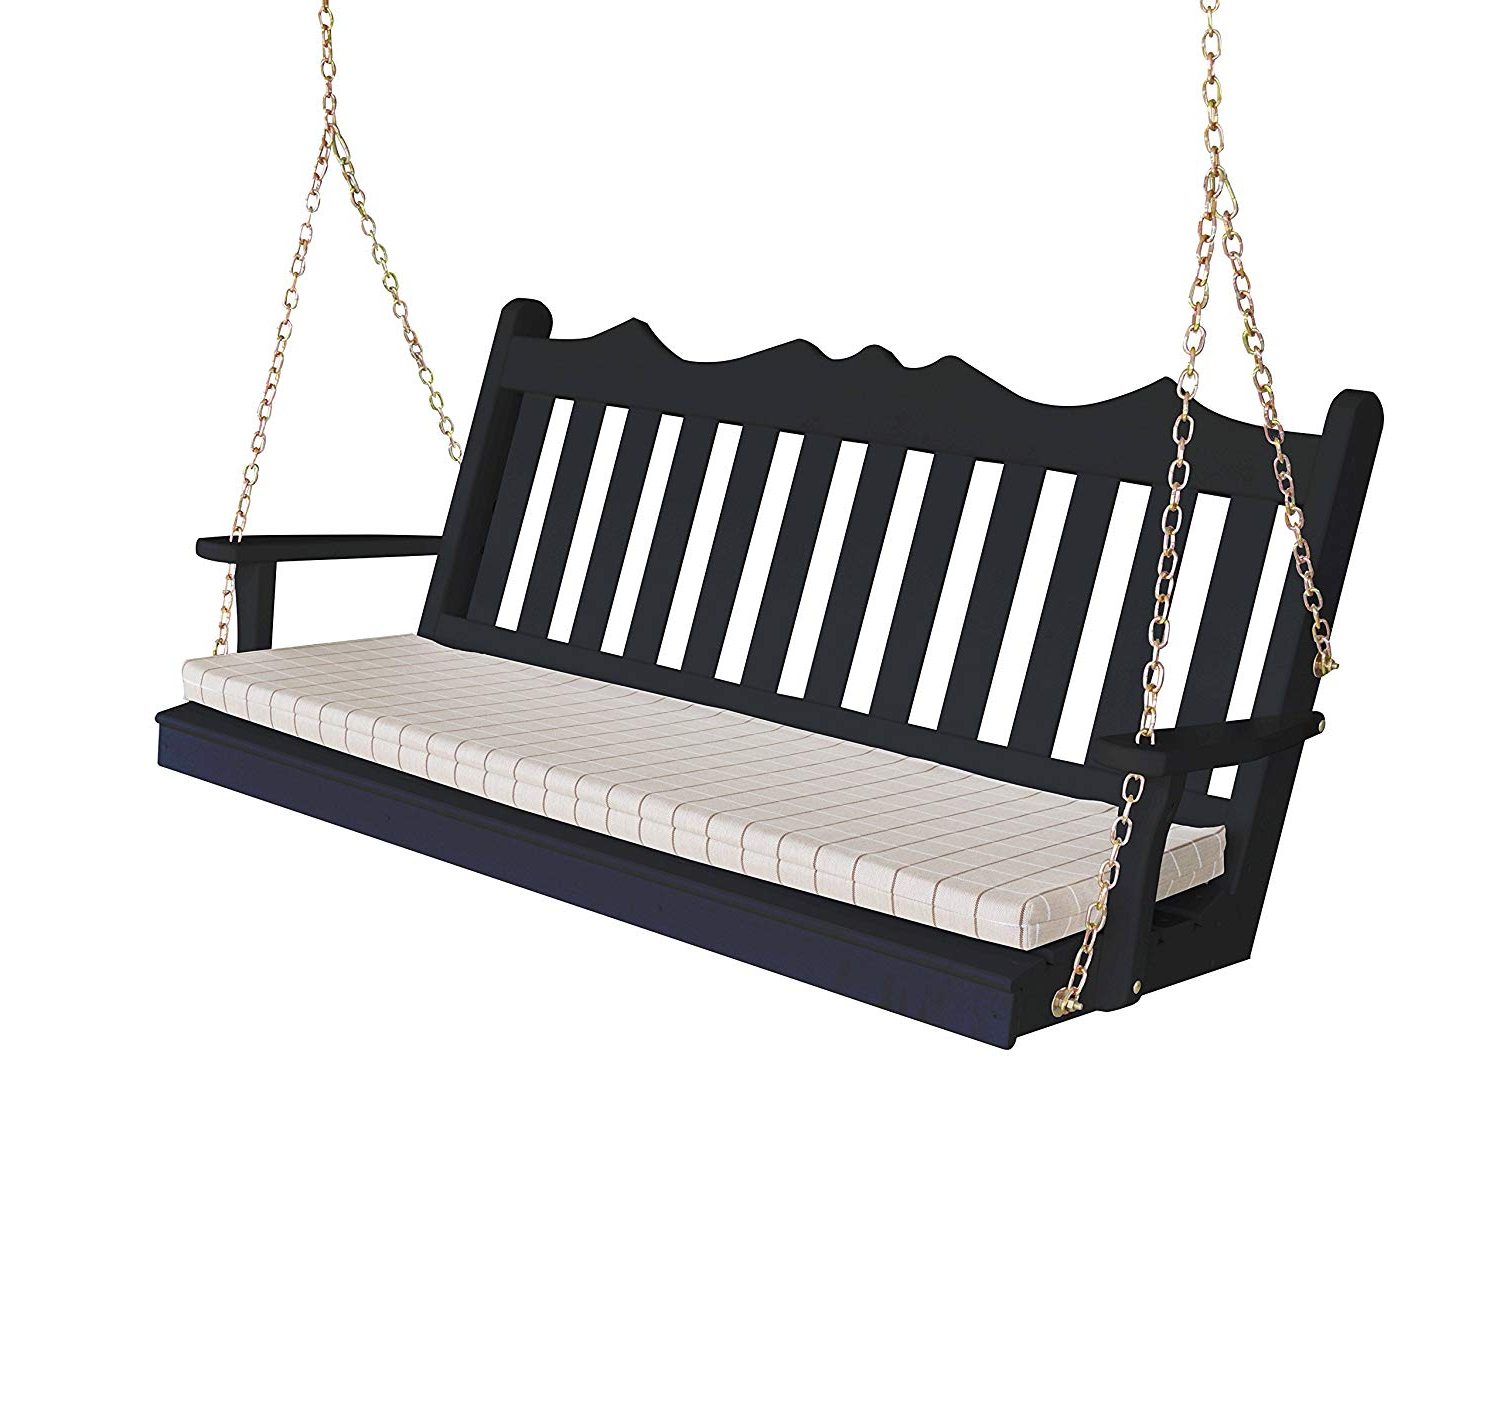 Widely Used 2 Person Black Wood Outdoor Swings With Amazon : Wood Porch Swing, Amish Outdoor Hanging Porch (Gallery 5 of 30)